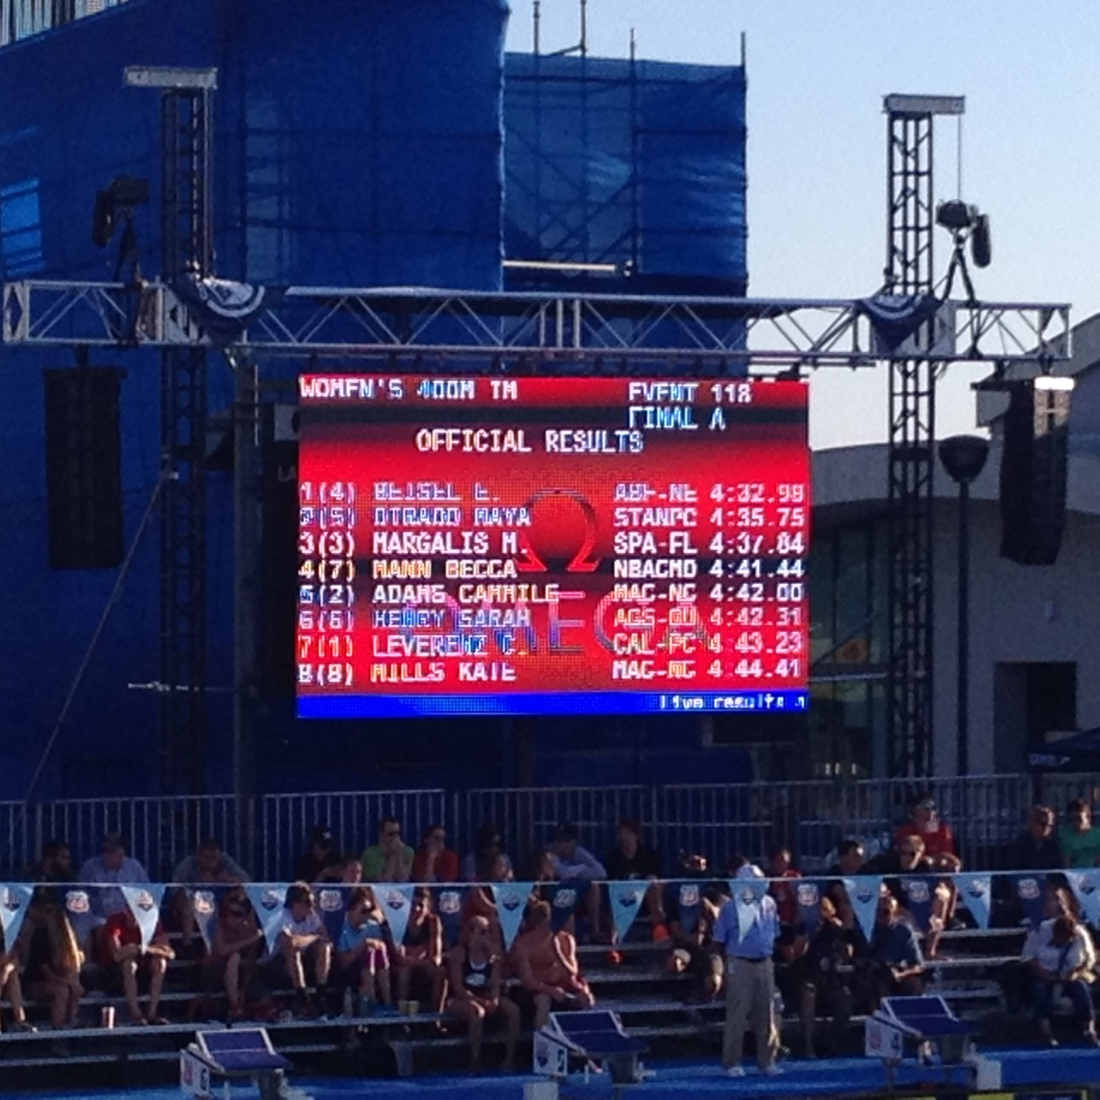 Maya placed a thrilling 2nd in the 400 IM…she's headed to Australia for the World Championship!!!